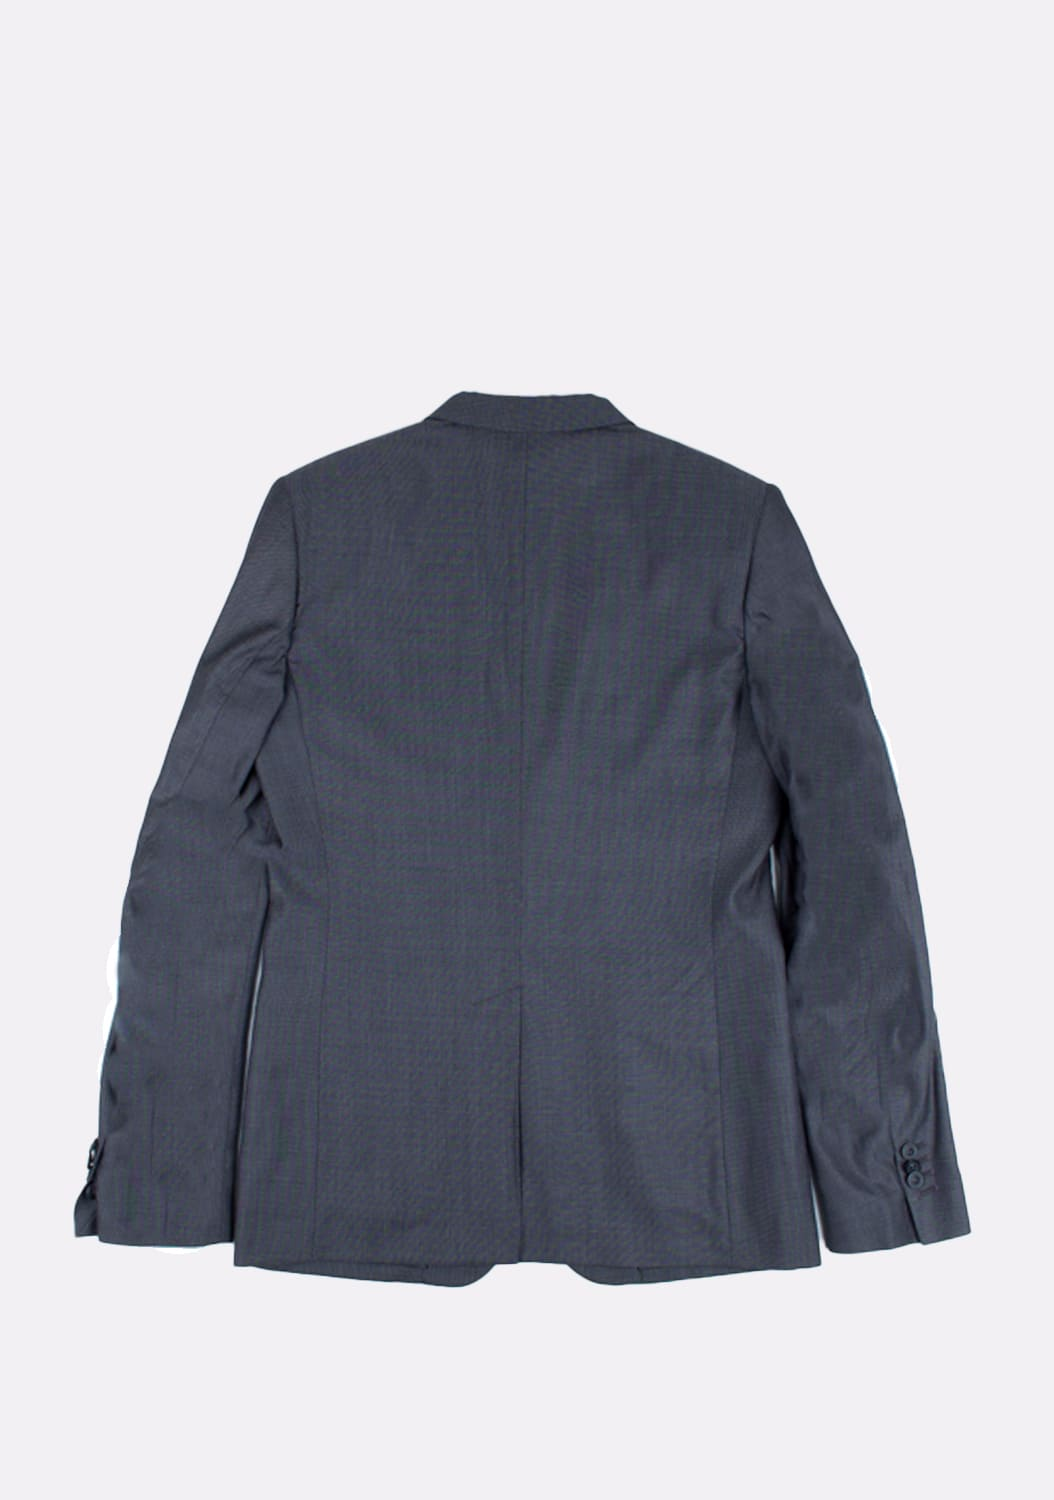 urocklt-Maison-Martin-Margiela-Jacket-Slim-Wool-Silk-Blend-Blazer-48-ITA-Grey (4)